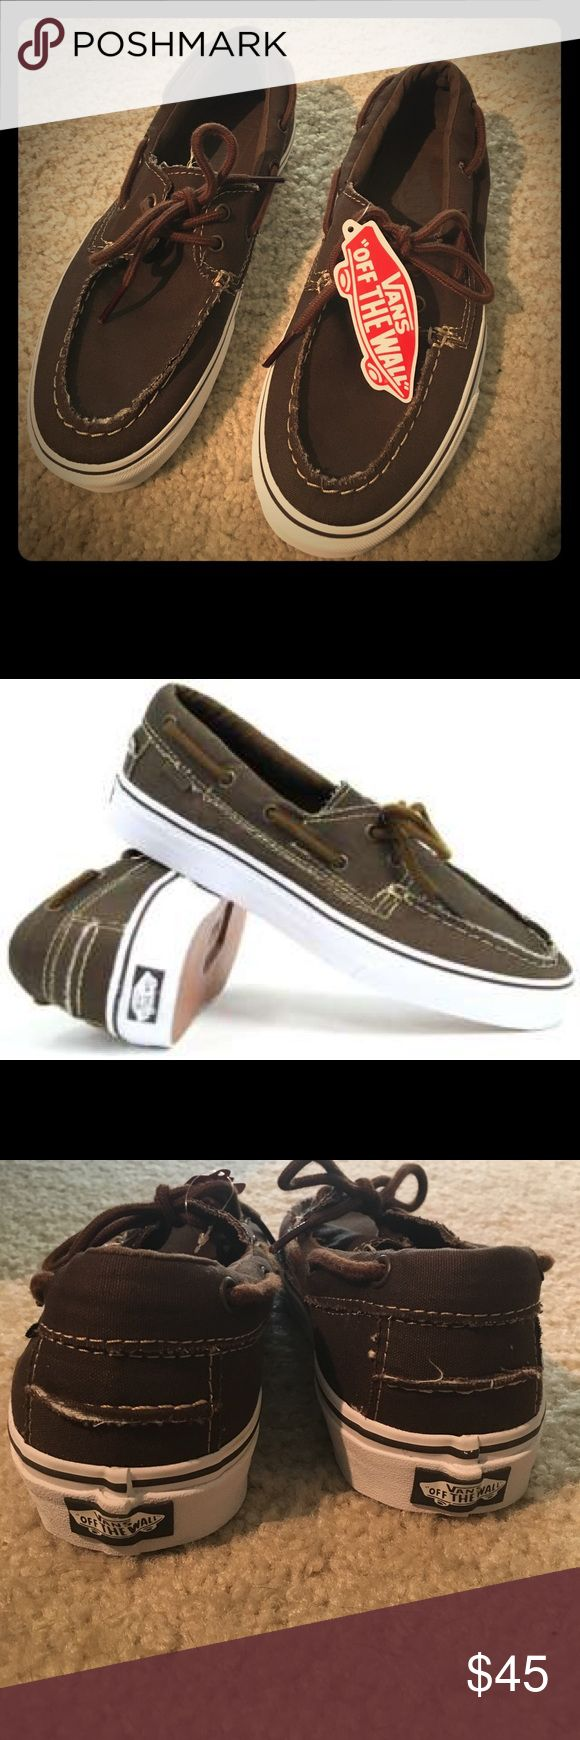 Vans Zapato Del Barco Men's 7.5 / Women's 9 BRAND NEW with Tags. Never been worn. (No box) Size: Men's 7.5 / Women's 9 Vans Shoes Boat Shoes